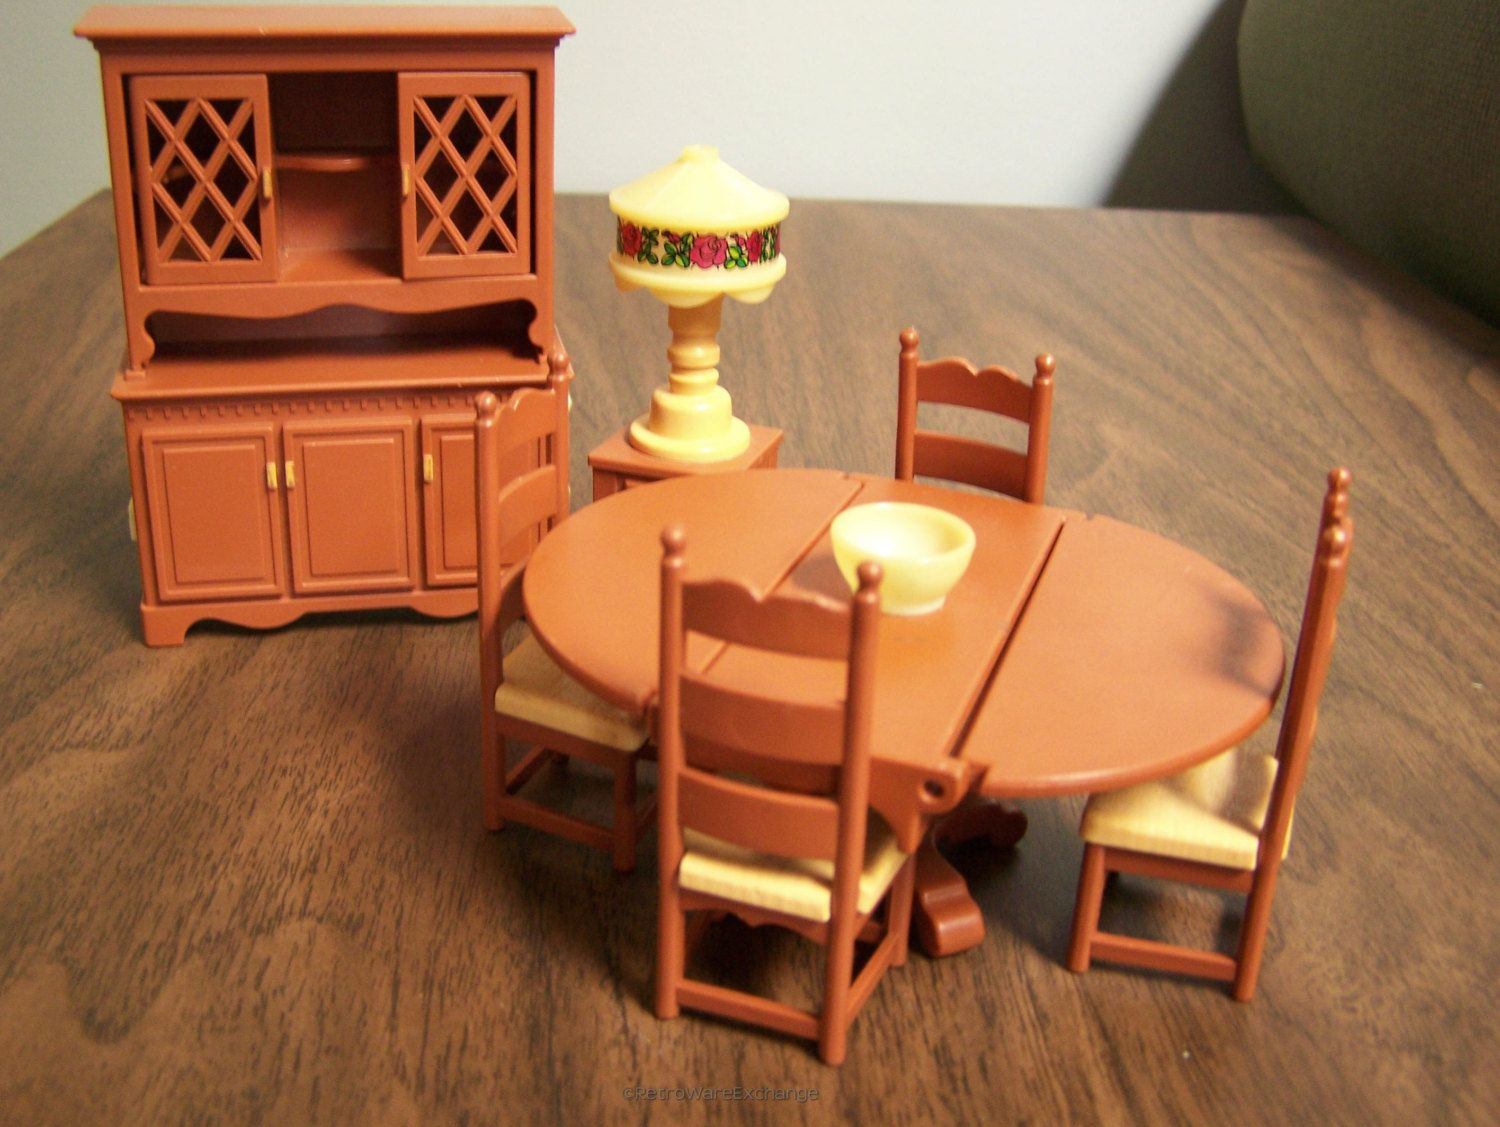 Vintage 1980 Fisher Price Loving Family Dollhouse Furniture   Dining Room  Set   Drop Leaf Table  4 chairs  China Cabinet   Hutch  and Lamp. Fisher Price Loving Family Dollhouse Furniture Set   Bathroom